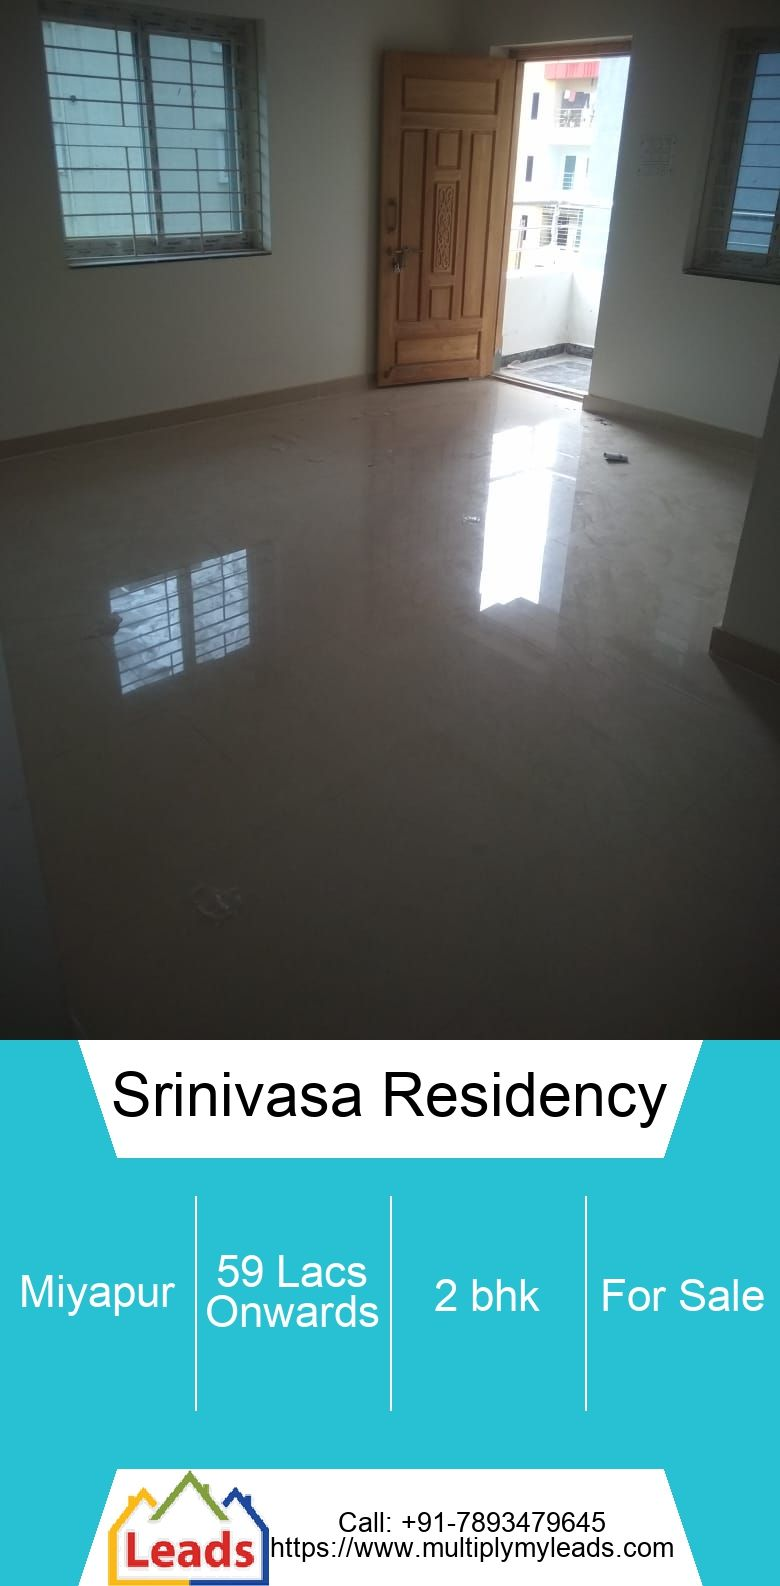 2 Bhk Residential Flat For Sale 59 0 Lakhs In Srinivasa Residency Miyapur 1100 0 Sq Feet The Built Up Area Of Property Is 1100 In 2020 Property Resident Dining Hall